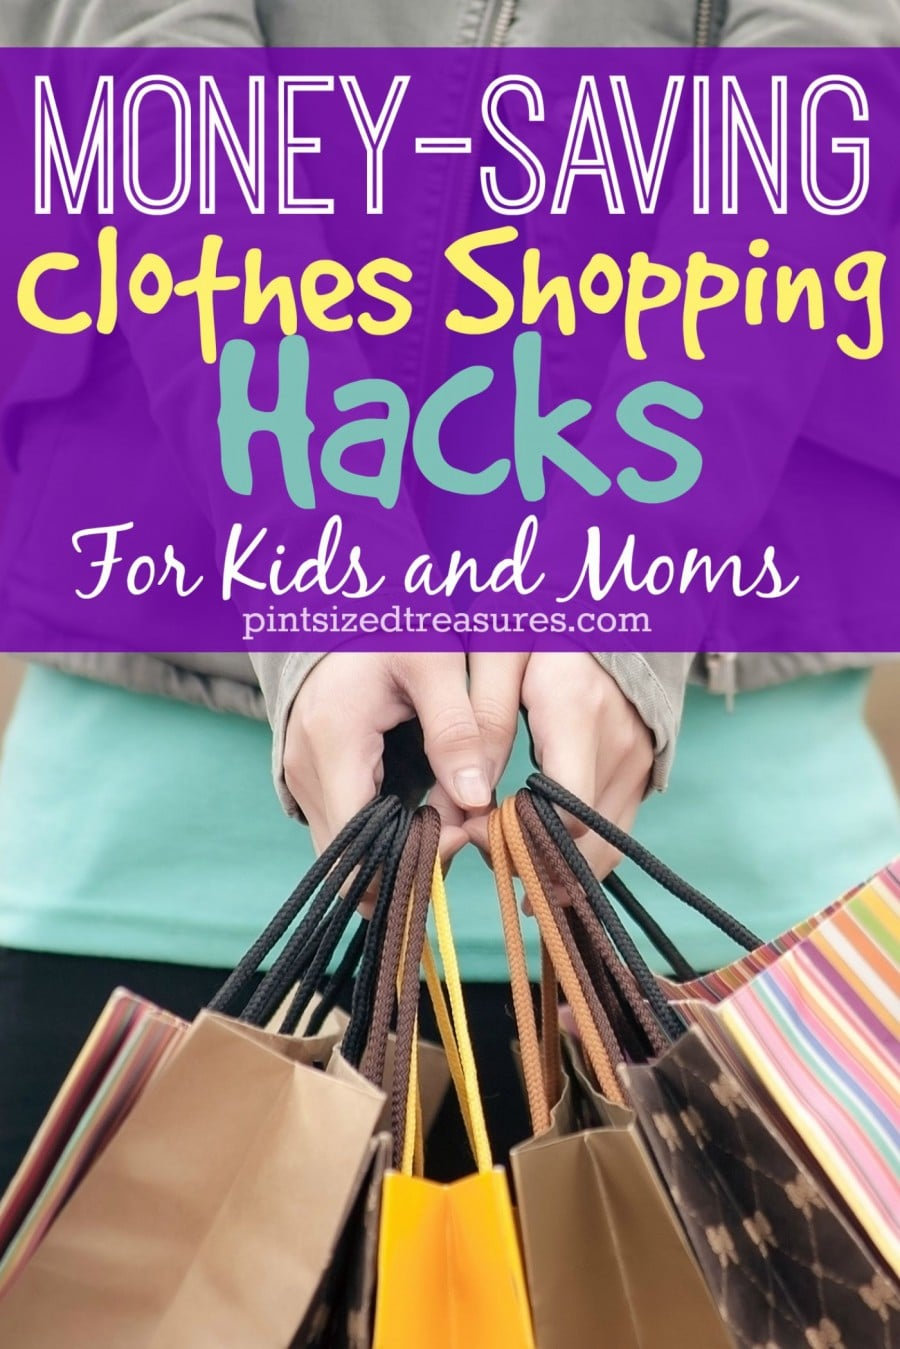 money-saving clothes shopping hacks